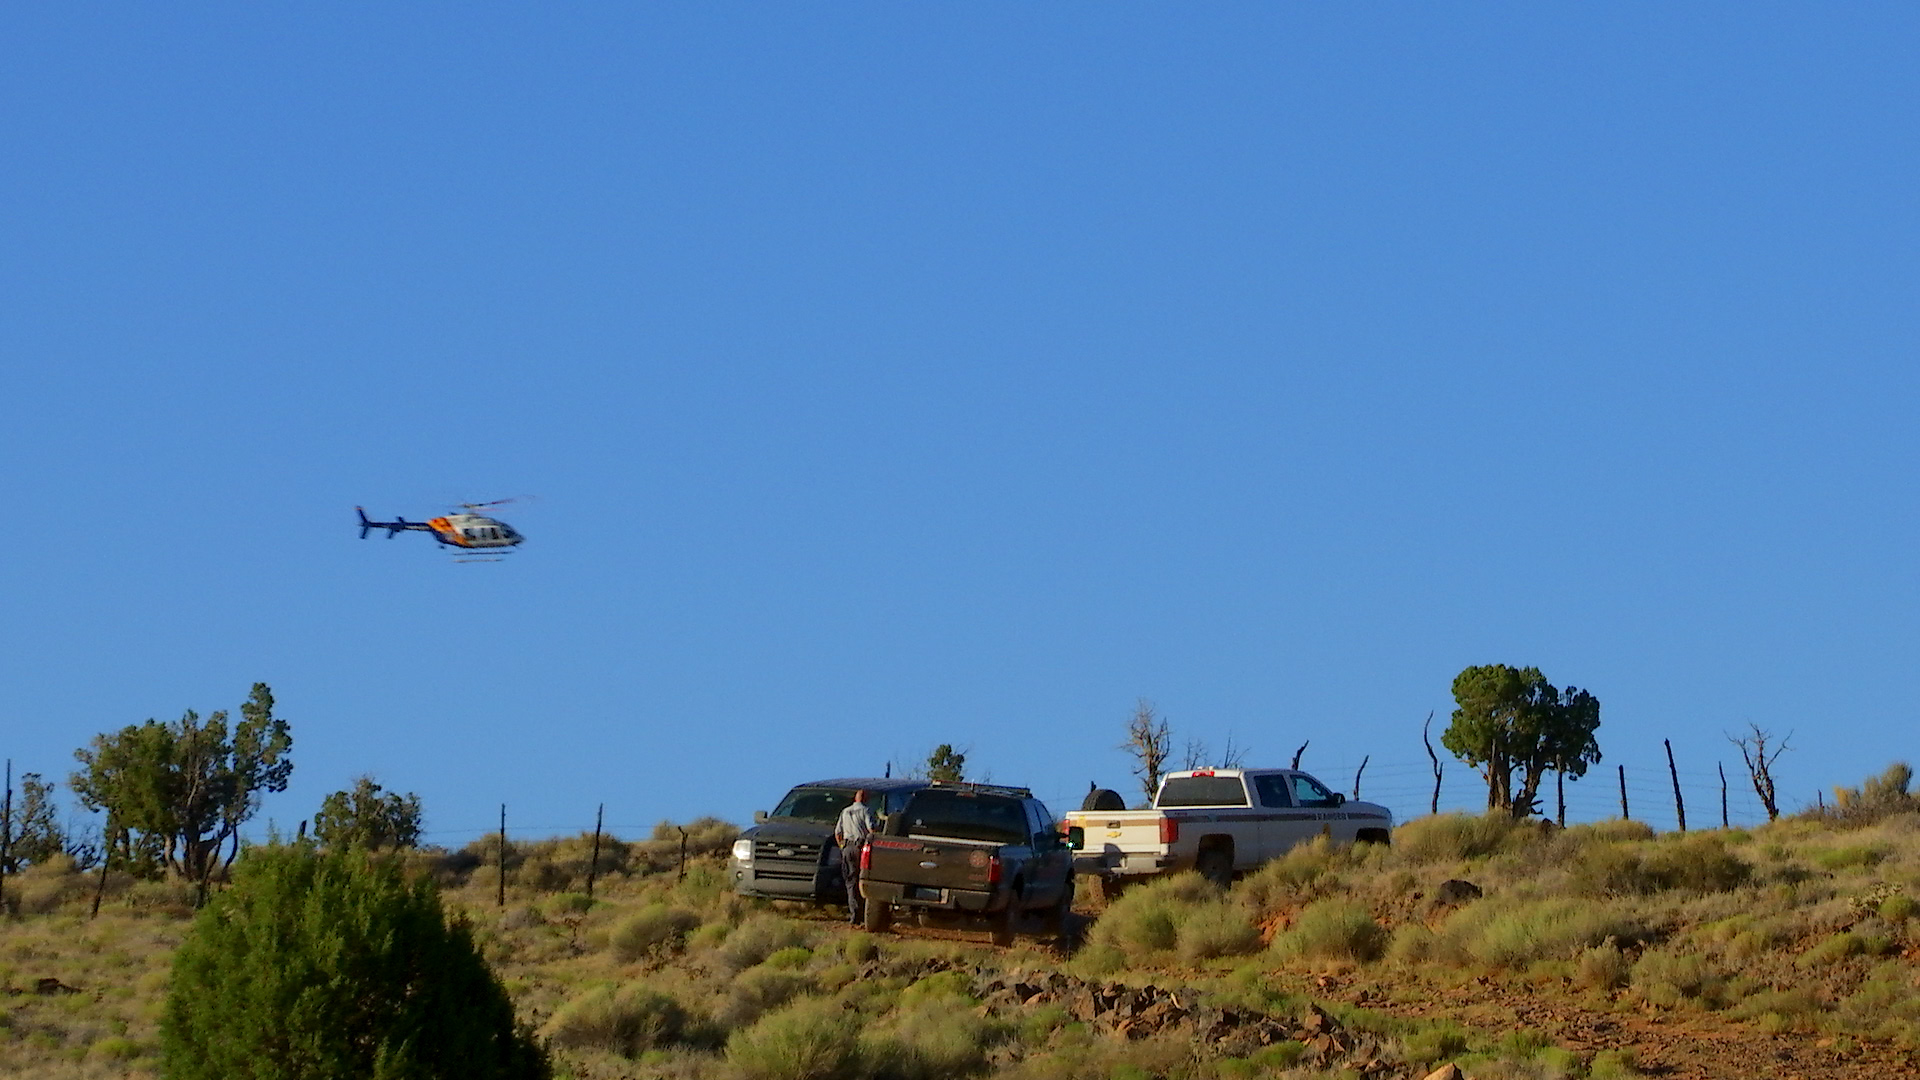 Mohave County Sheriff's search and rescue team, Arizona Department of Public Safety (helicopter) and personnel from Southern Utah agencies spent Thursday searching a portion of the Arizona Strip near Mt. Trumbull for 30-year-old David Heisler. Heisler went missing from his Santa Clara home June 27 and two suspects have since confessed to abducting him. Francis Lee McCard allegedly told police he dropped Heisler off in the desert location, being searched, alive. Arizona Strip, Arizona, July 7, 2016 | Photo by Kimberly Scott, St. George News